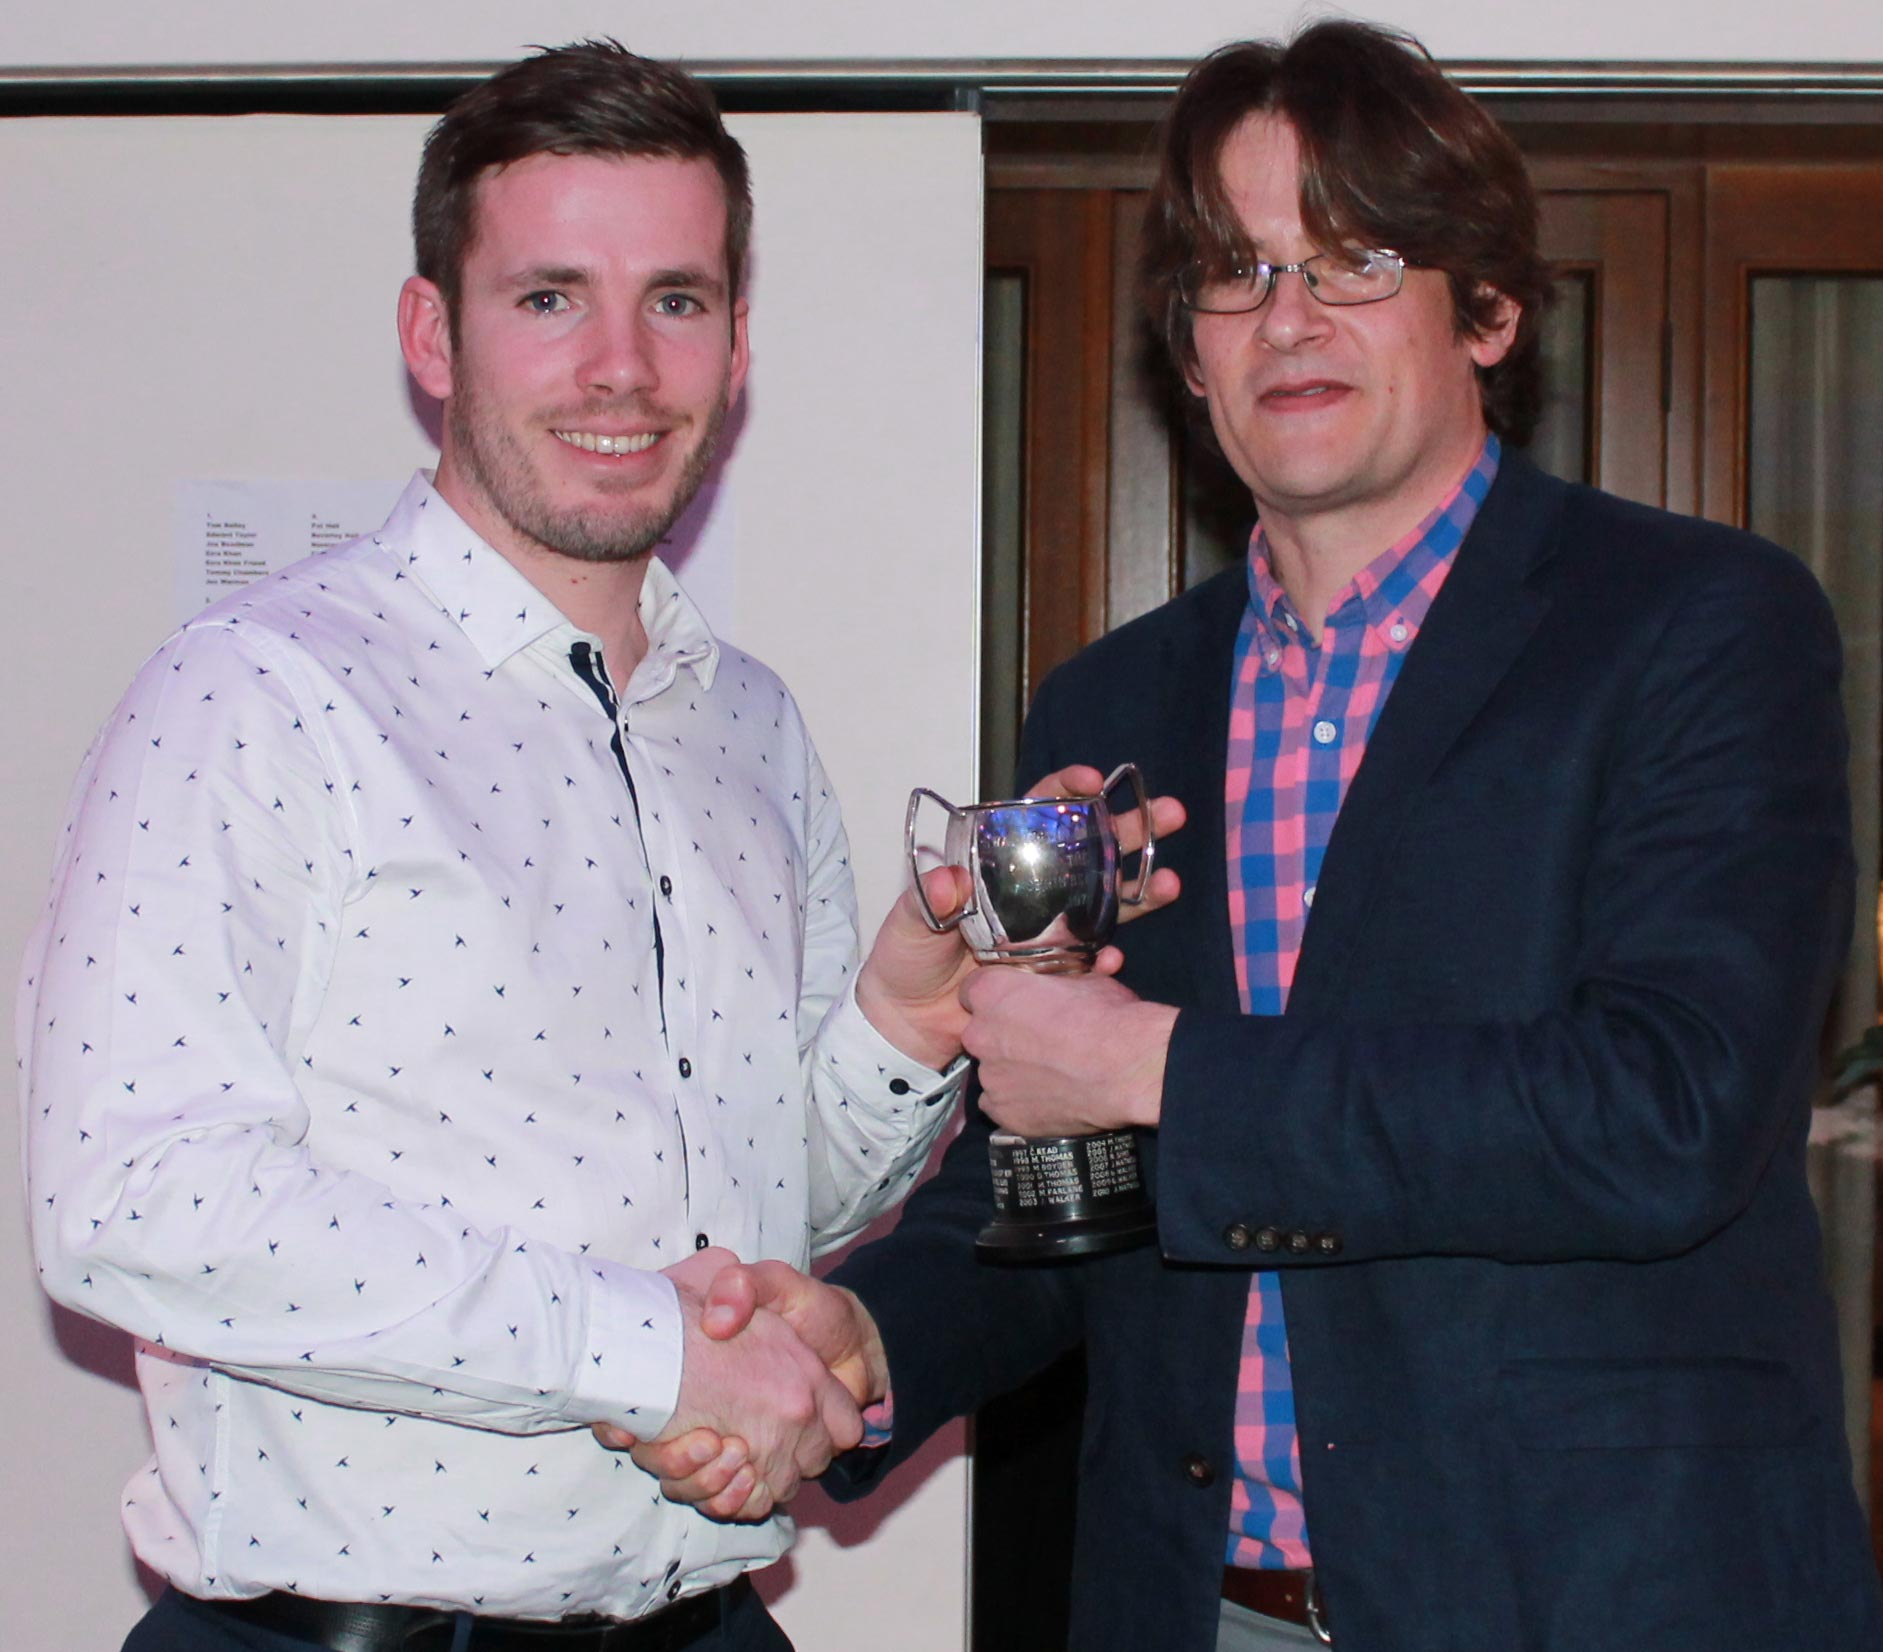 Mark Thomas presents Joe Gatting with the Chris Bean Cup for the Premier XI player of the year.